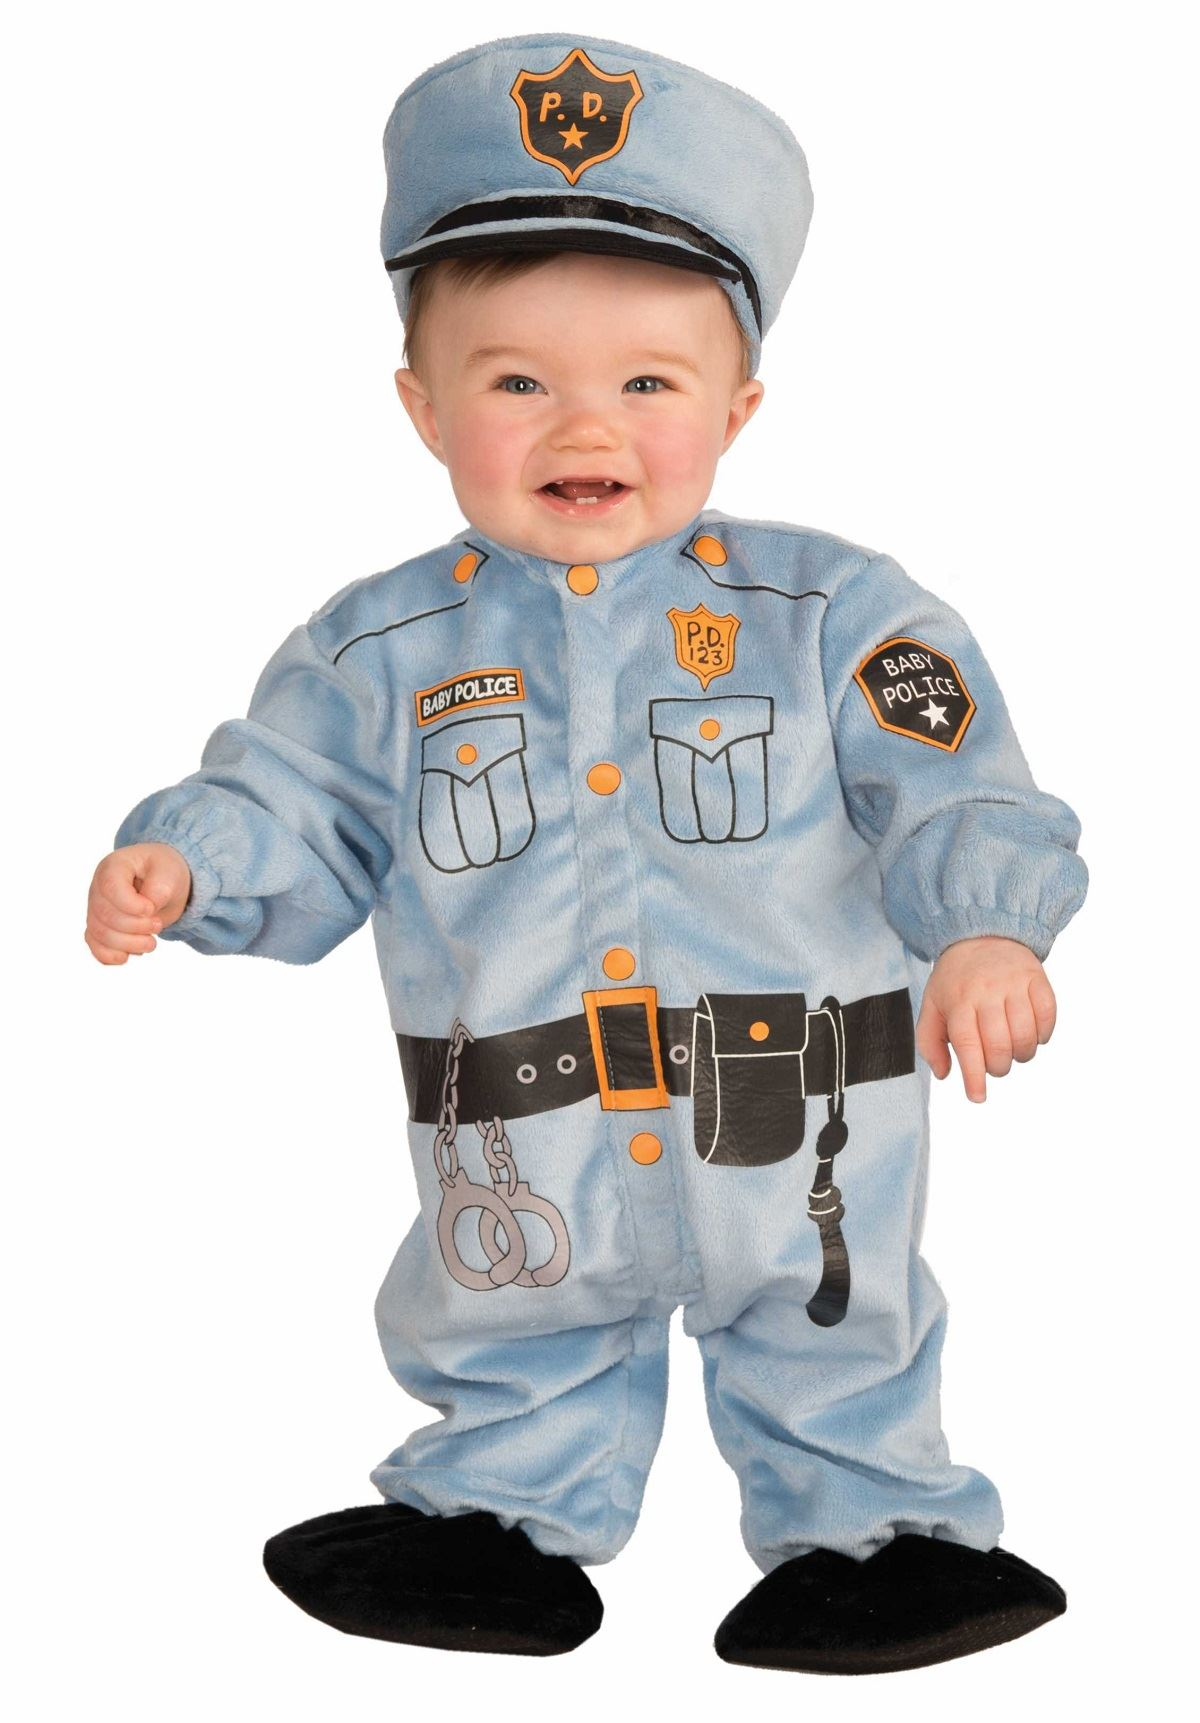 Kids Police Man Toddler Costume  sc 1 st  The Costume Land & Kids Police Man Toddler Costume | $15.99 | The Costume Land